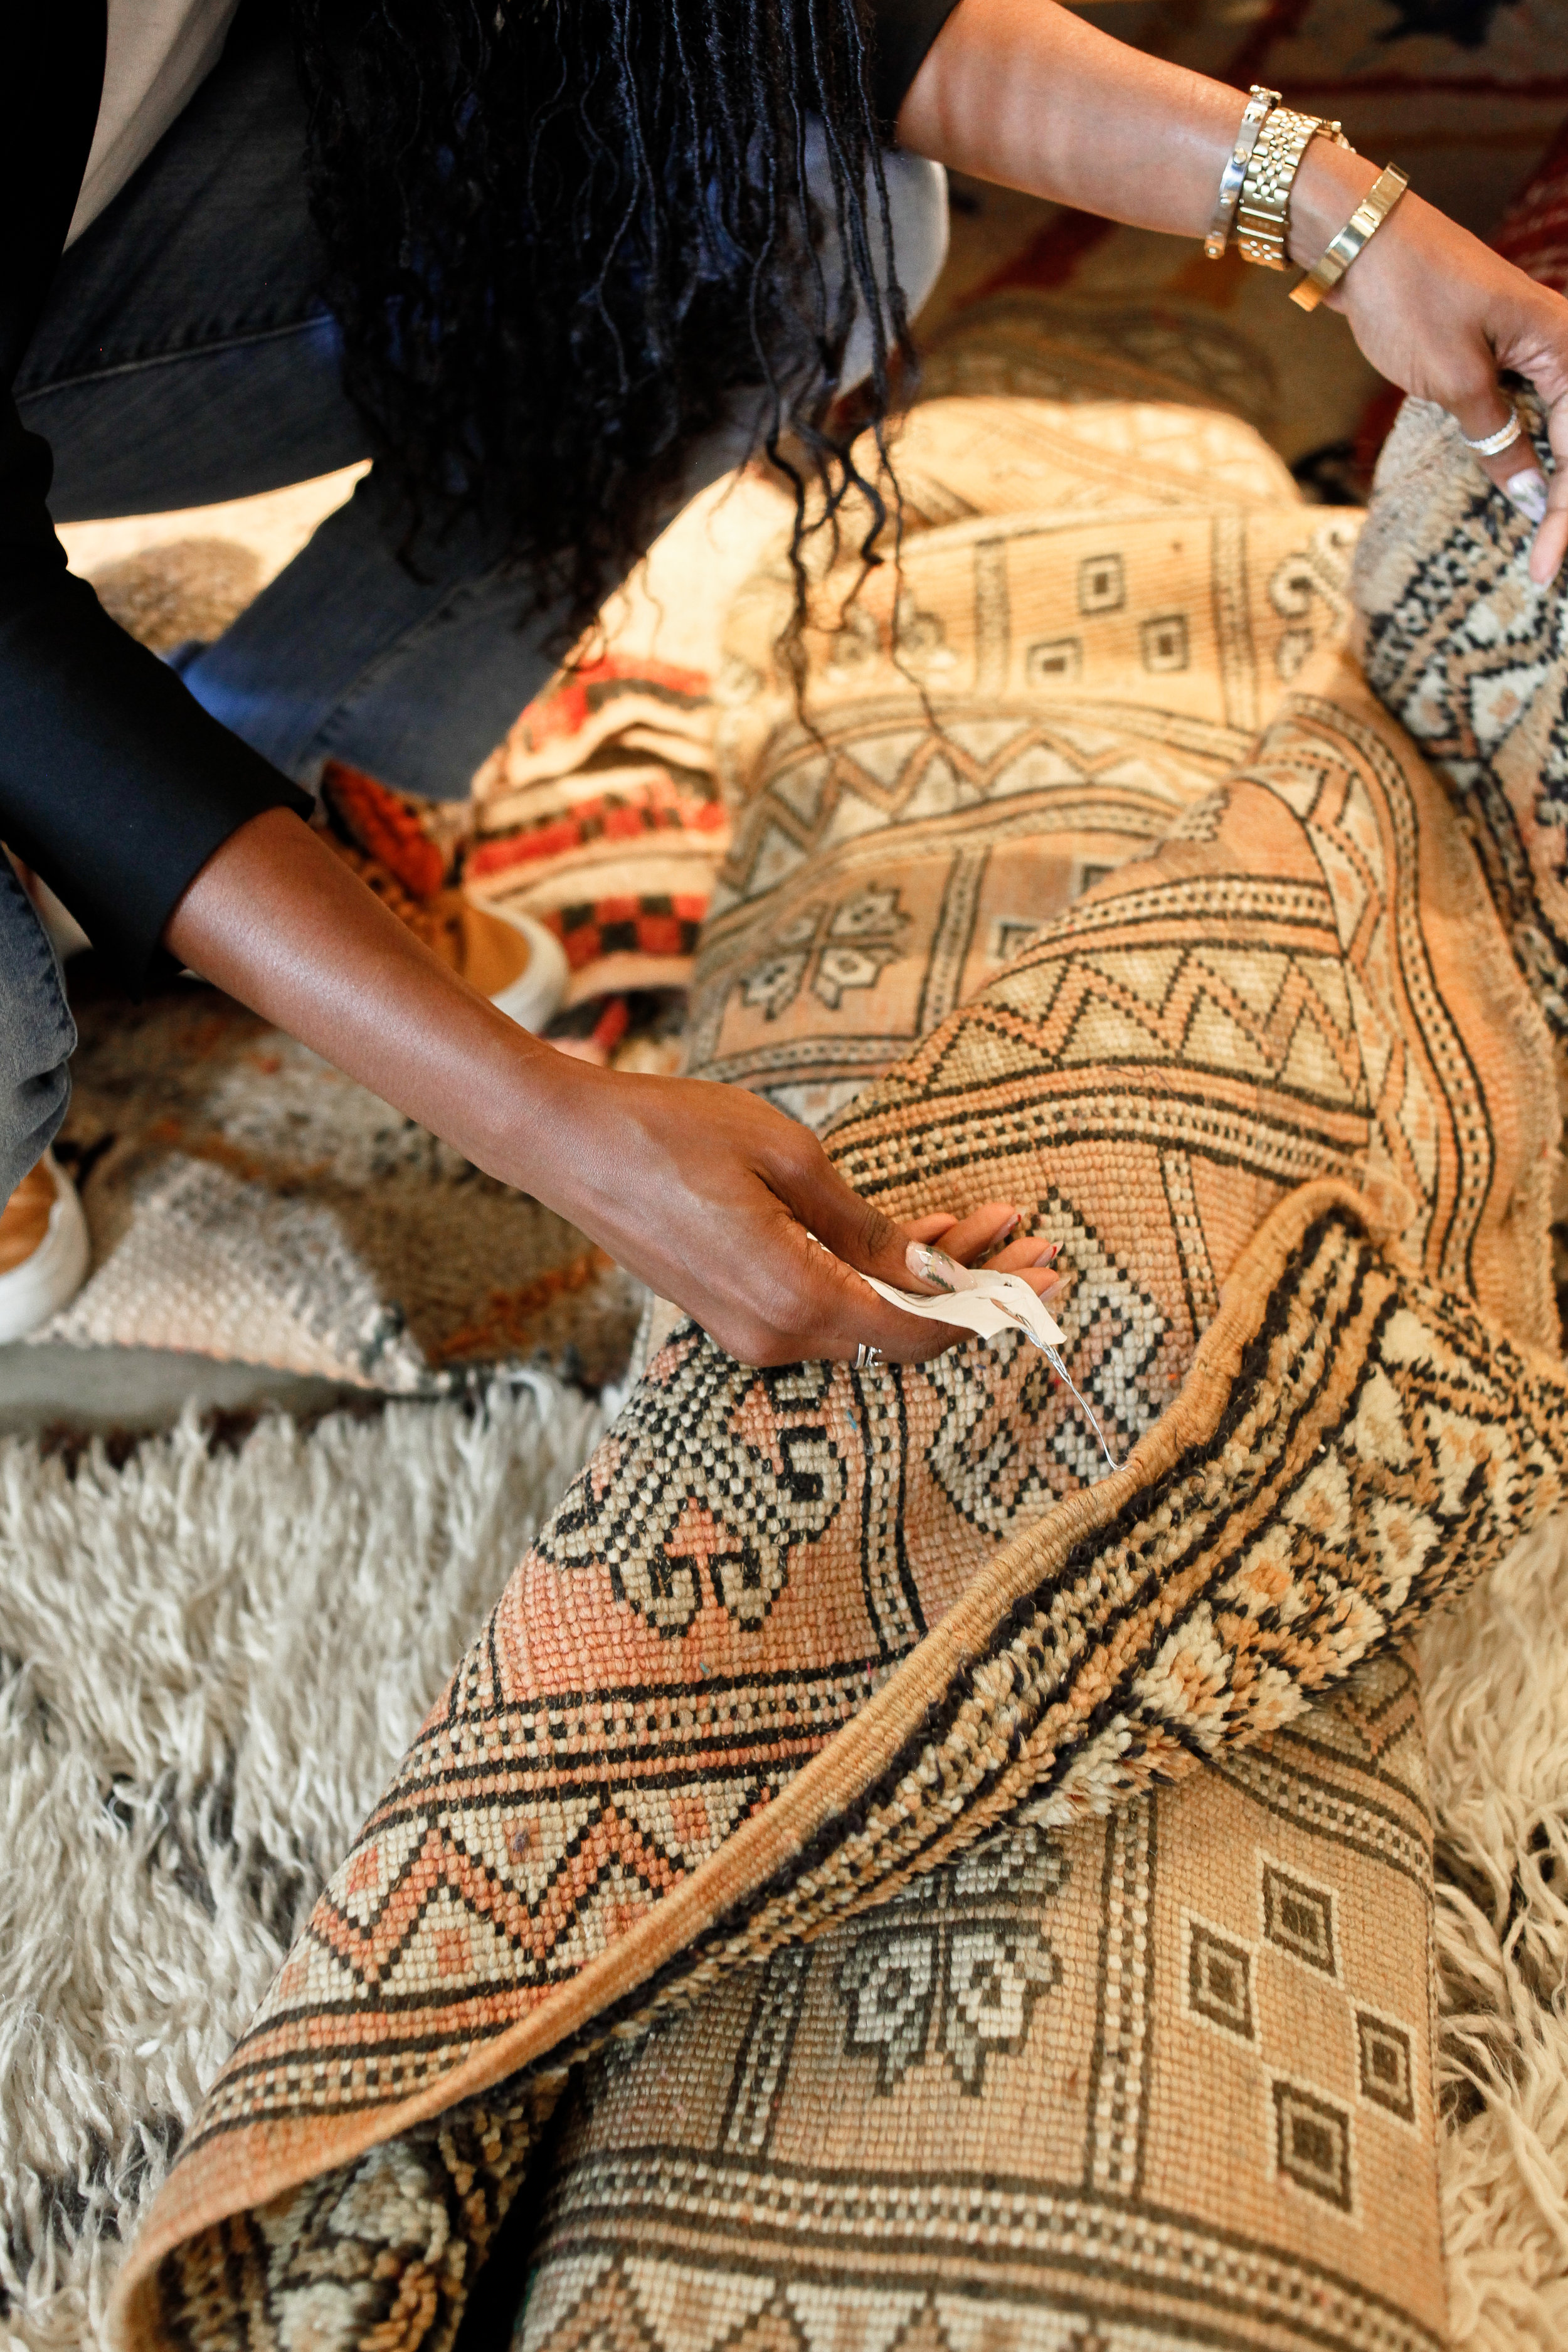 So many great one-of-a-kind rugs to choose from!